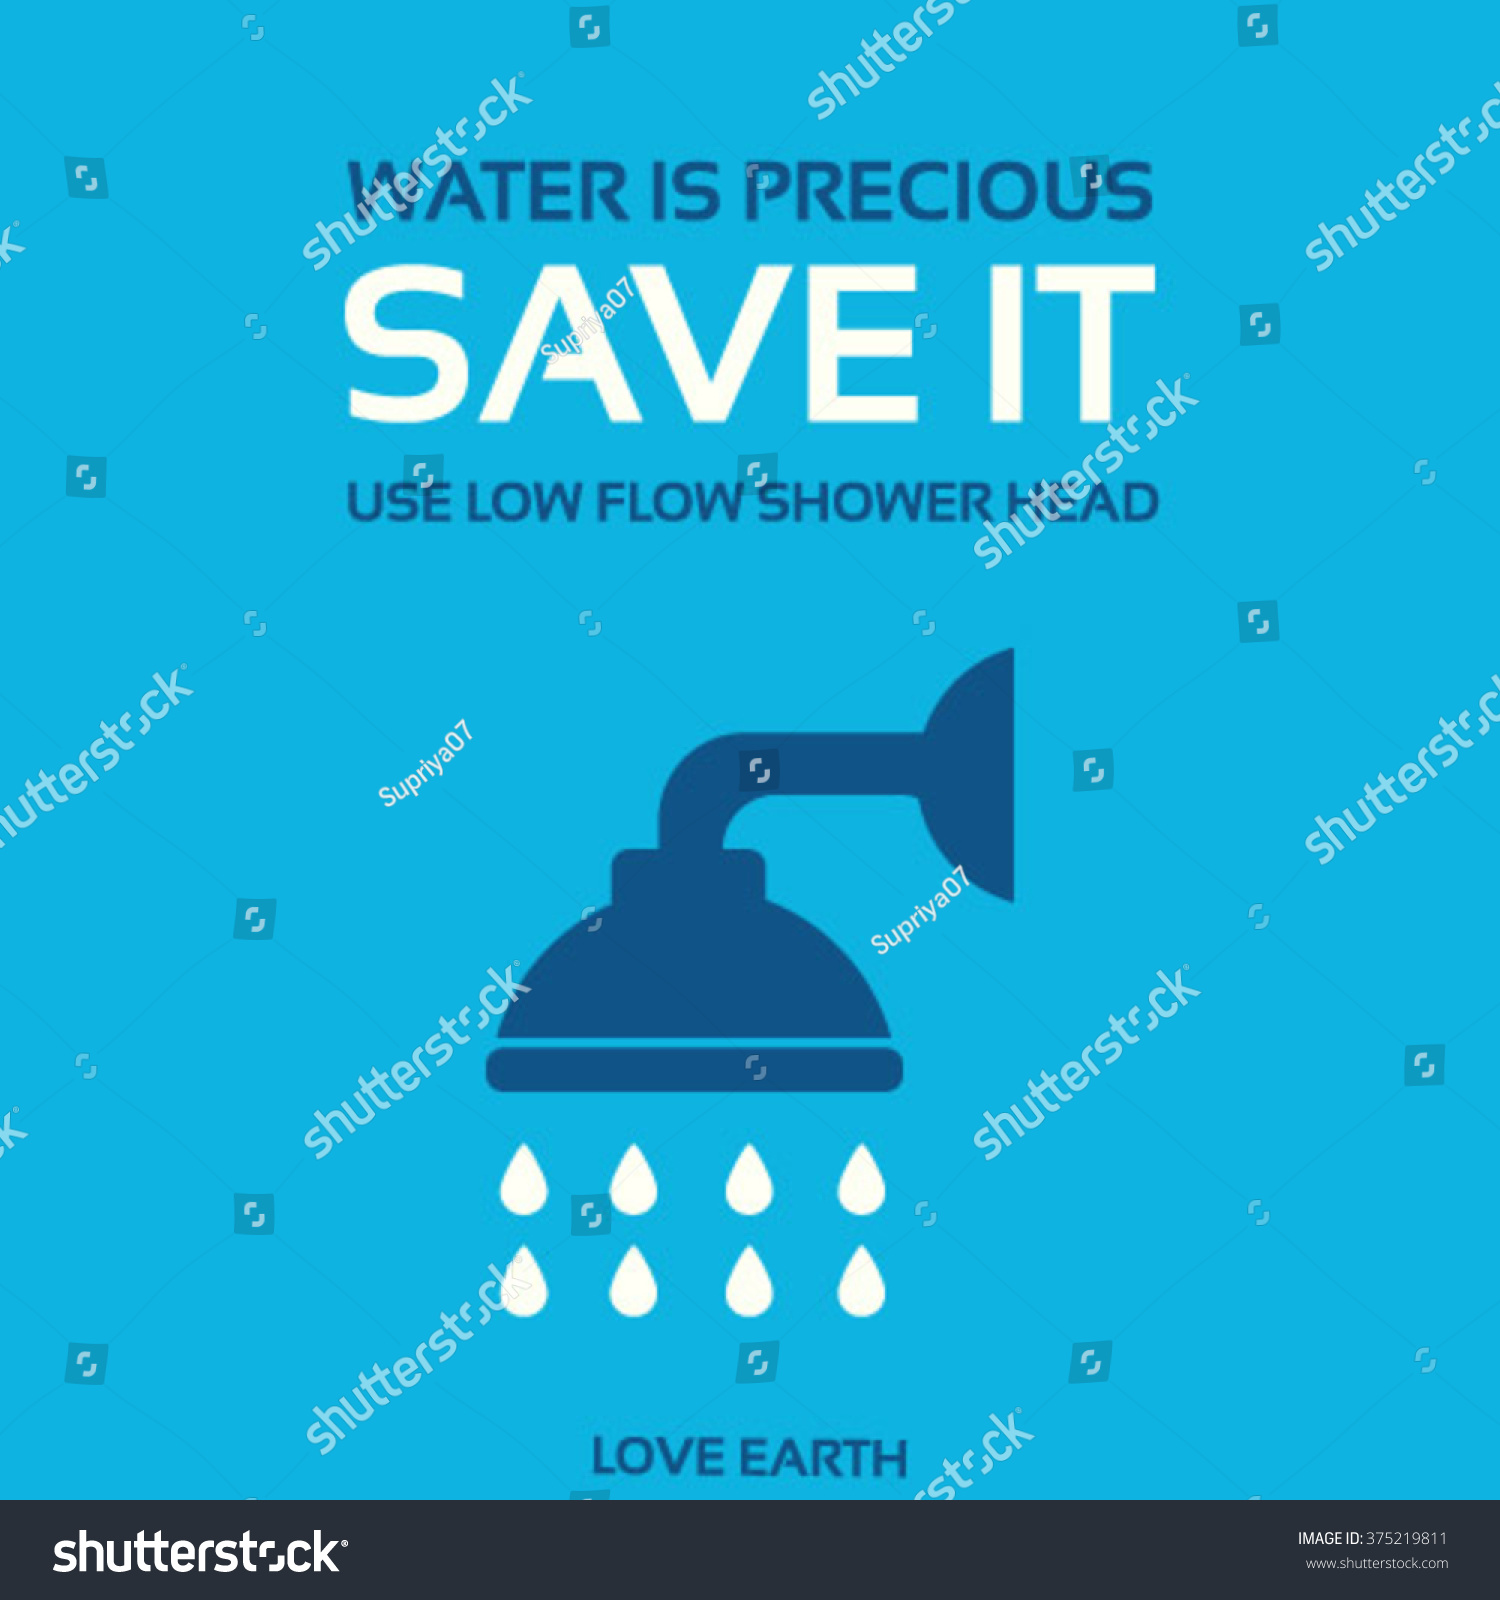 Water Precious Save It Use Lowflow Shower Headvector Stock Vector ...